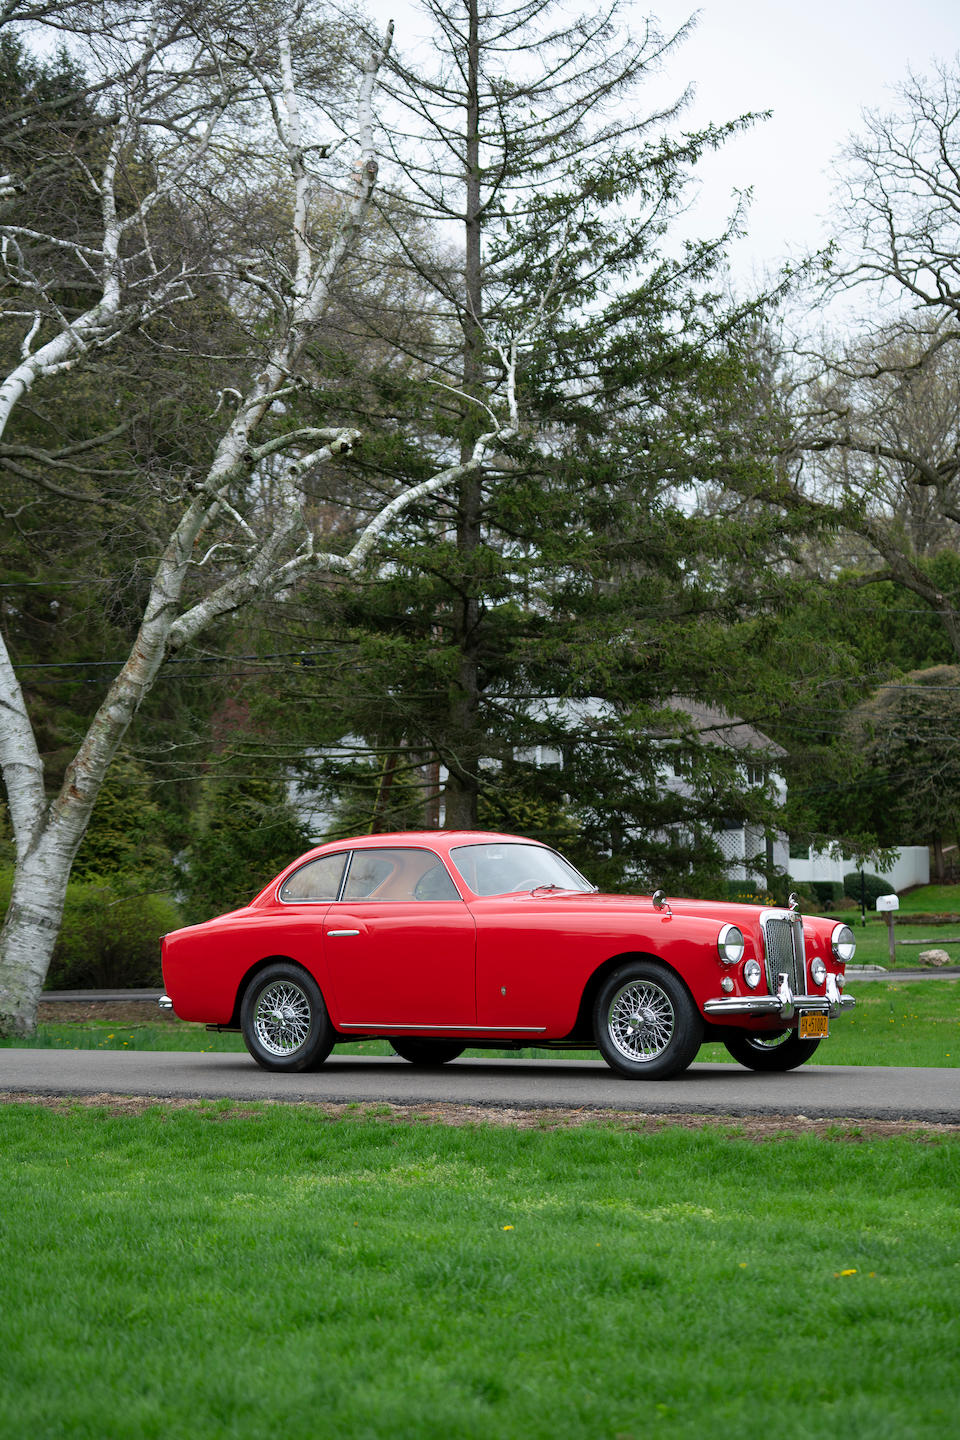 <b>1953 Arnolt-MG Coupe</b><br />Chassis no. 27581